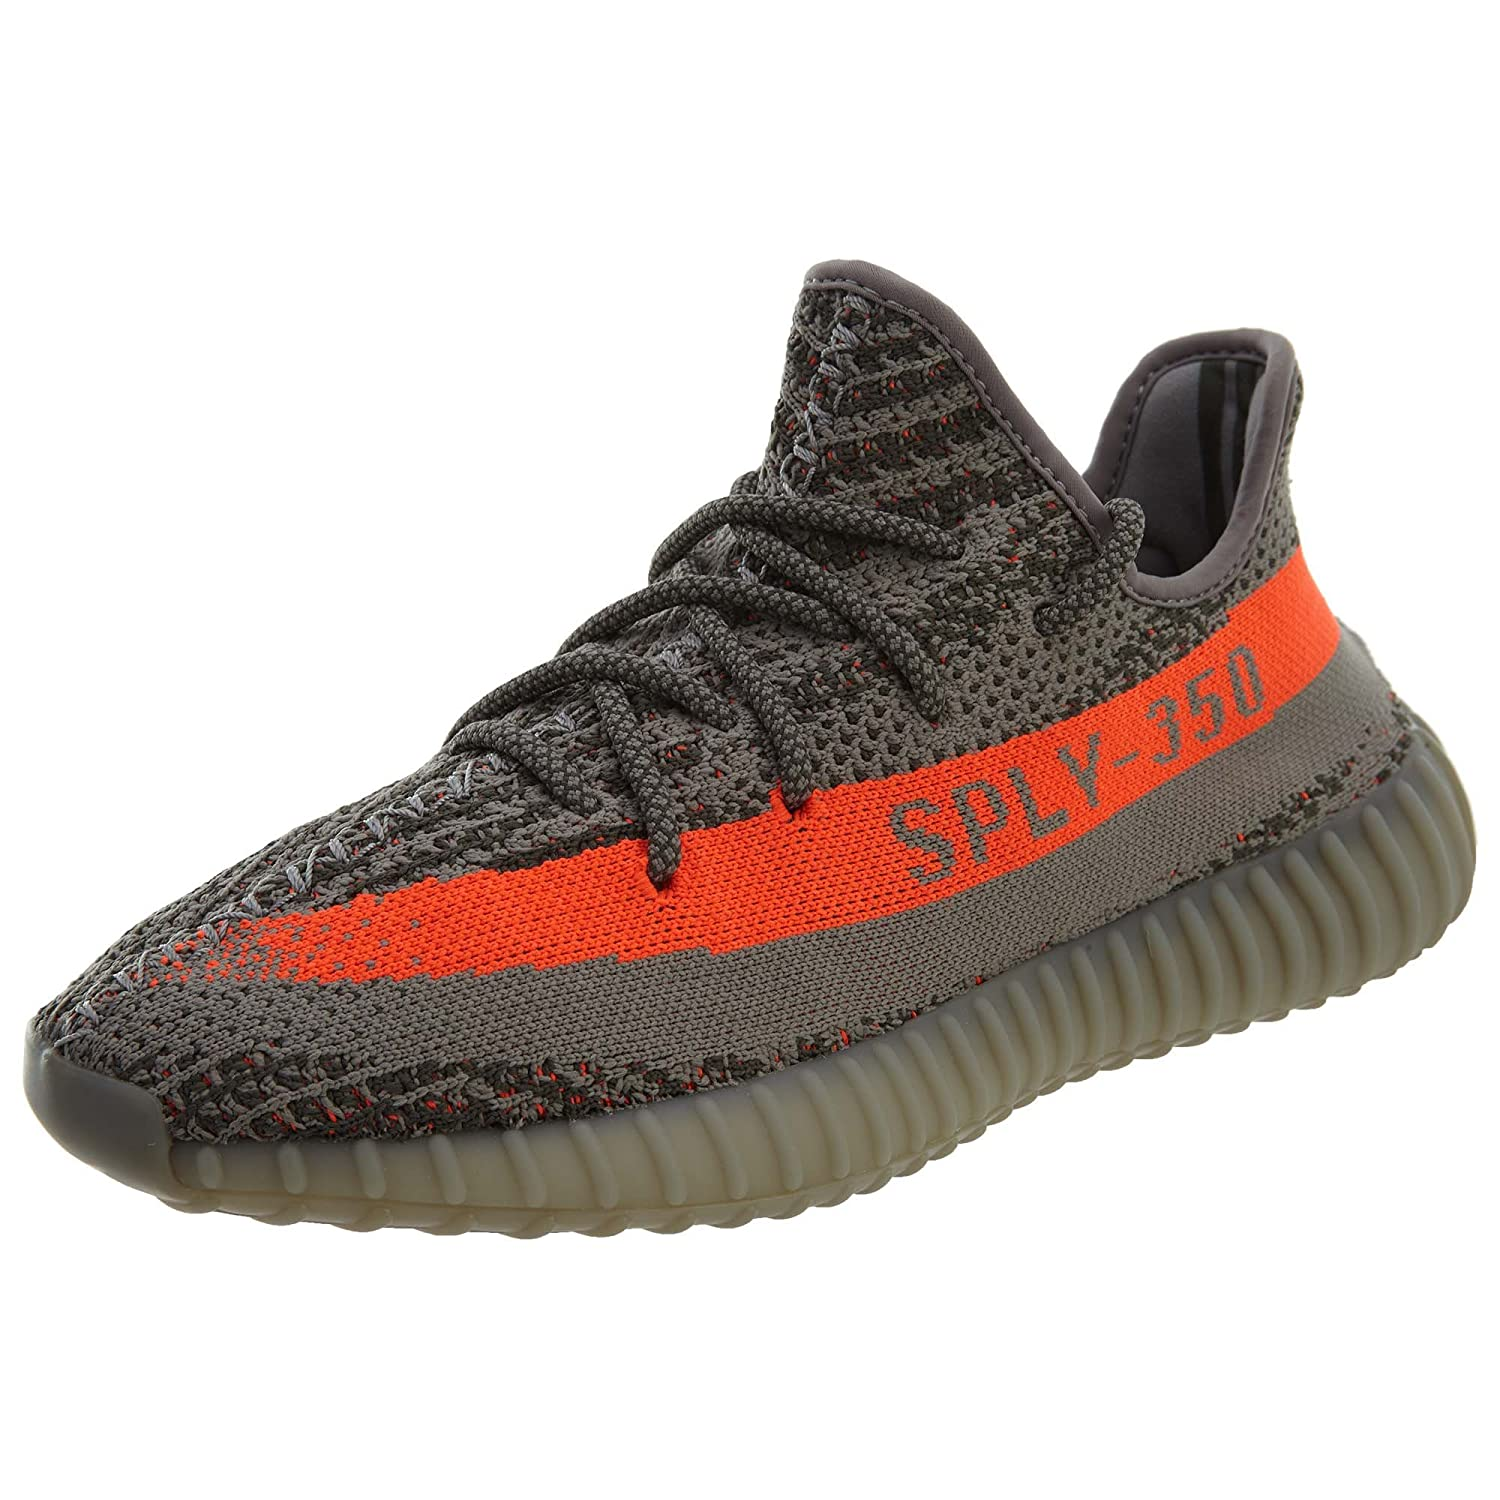 uk availability 1a829 5df55 adidas Yeezy Boost 350 V2 Beluga Basketball Shoe 10